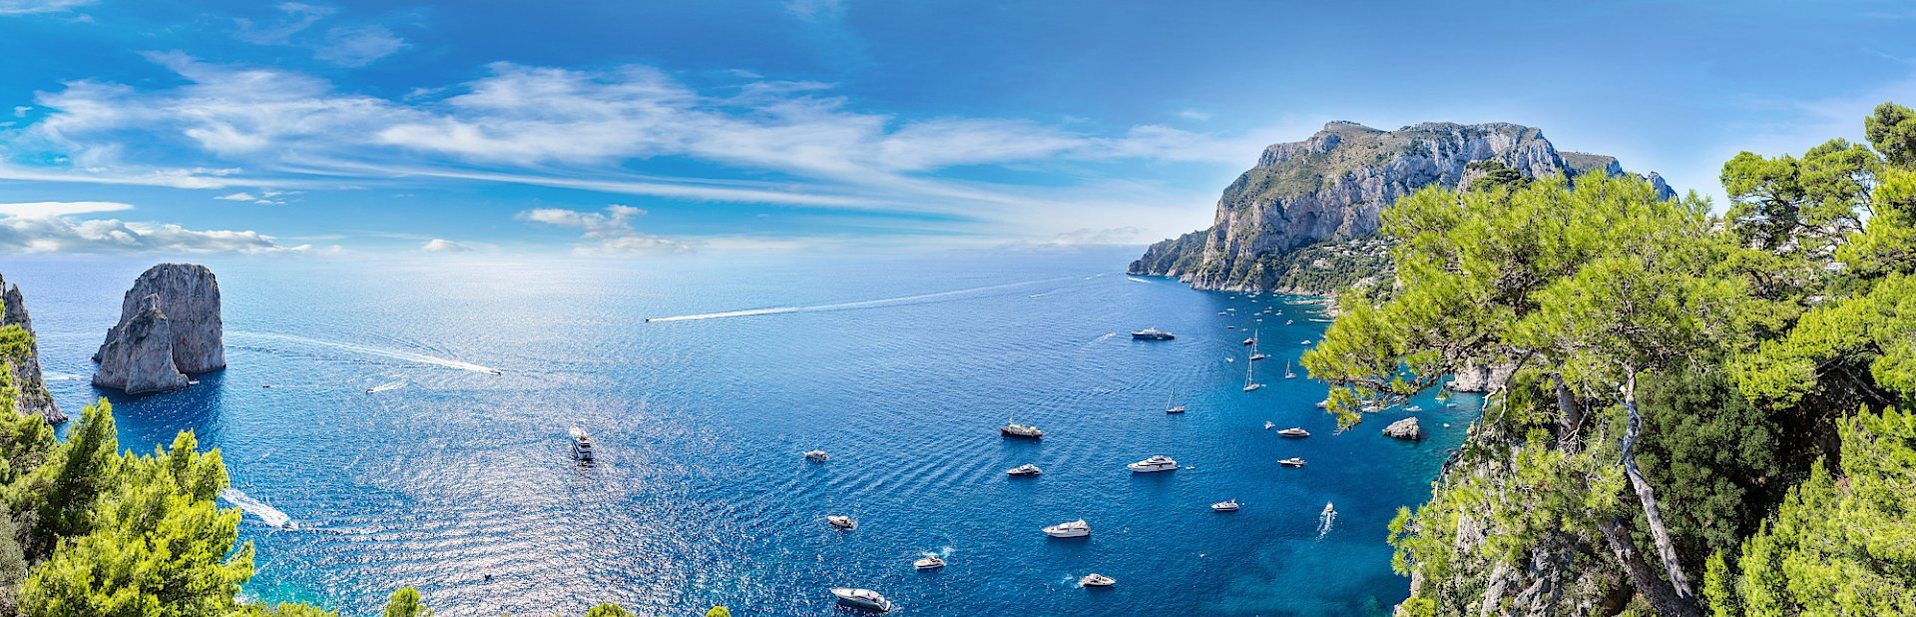 Luxury Yacht Charter Amalfi Coast